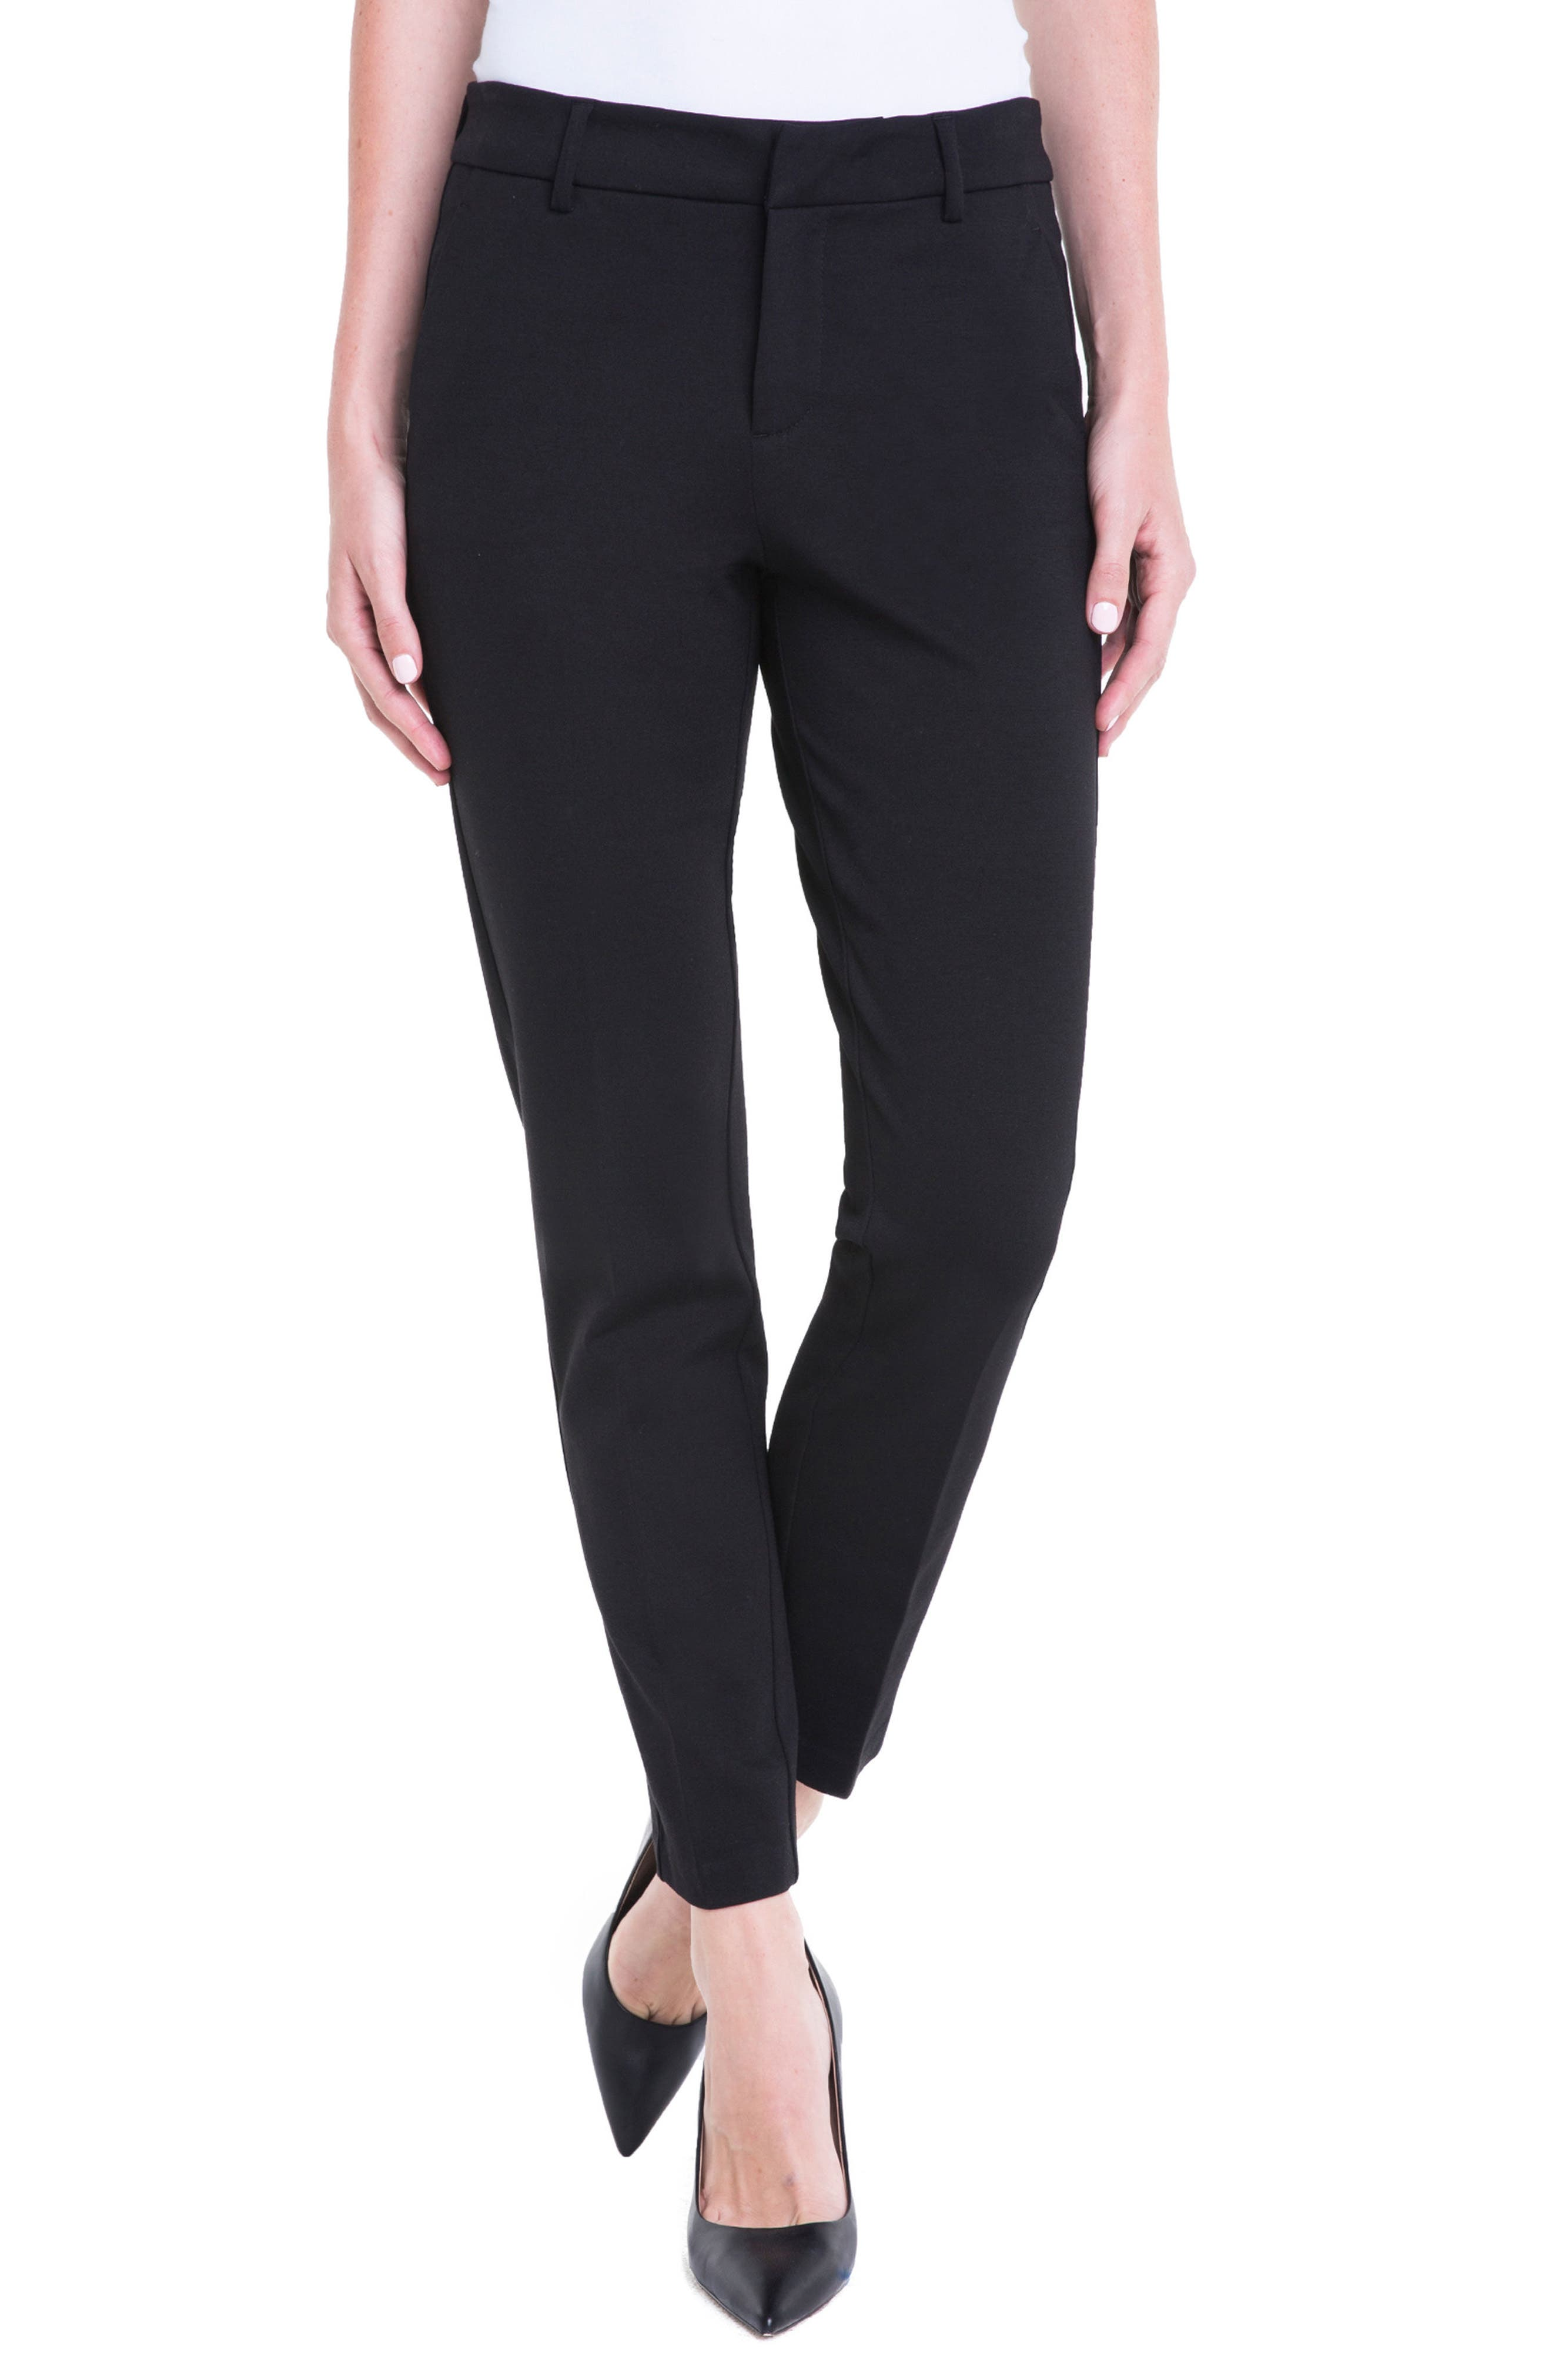 Kelsey Knit Trousers,                         Main,                         color, Black